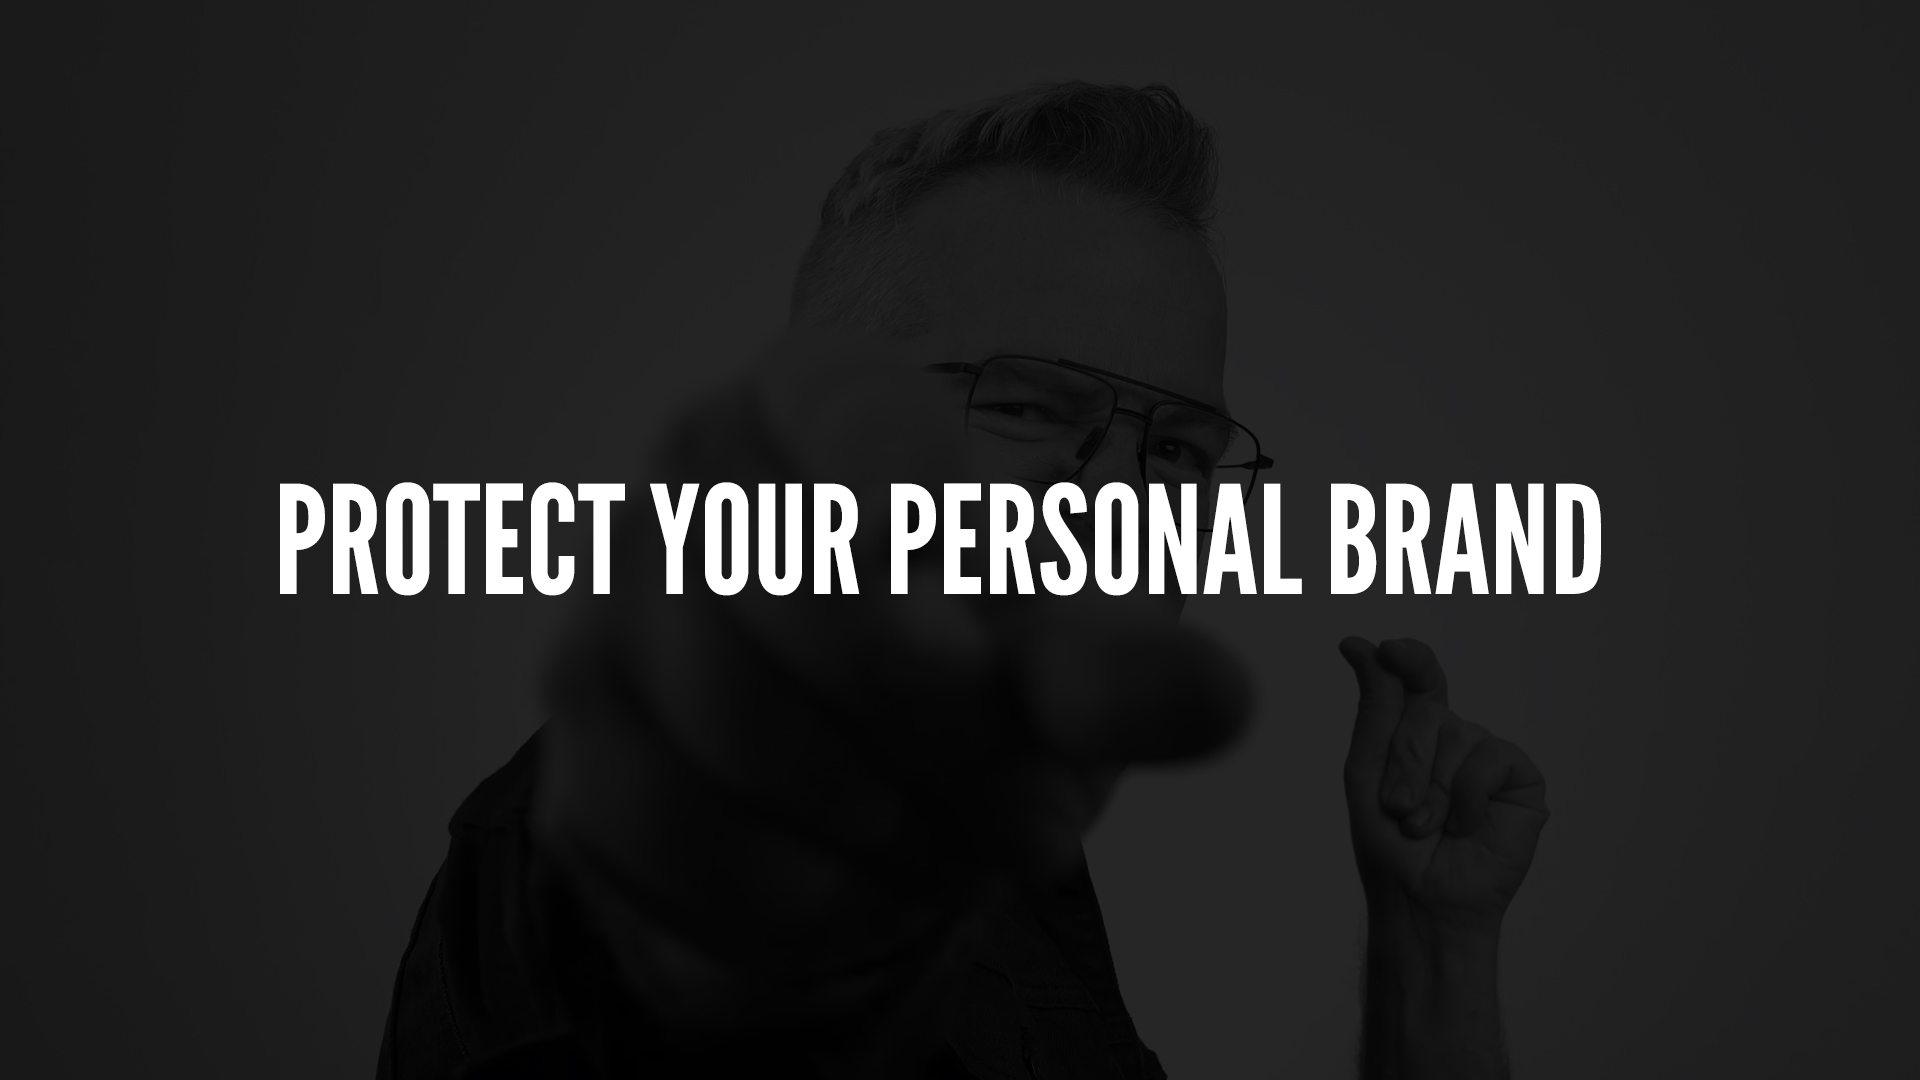 Protect Your Personal Brand.jpg